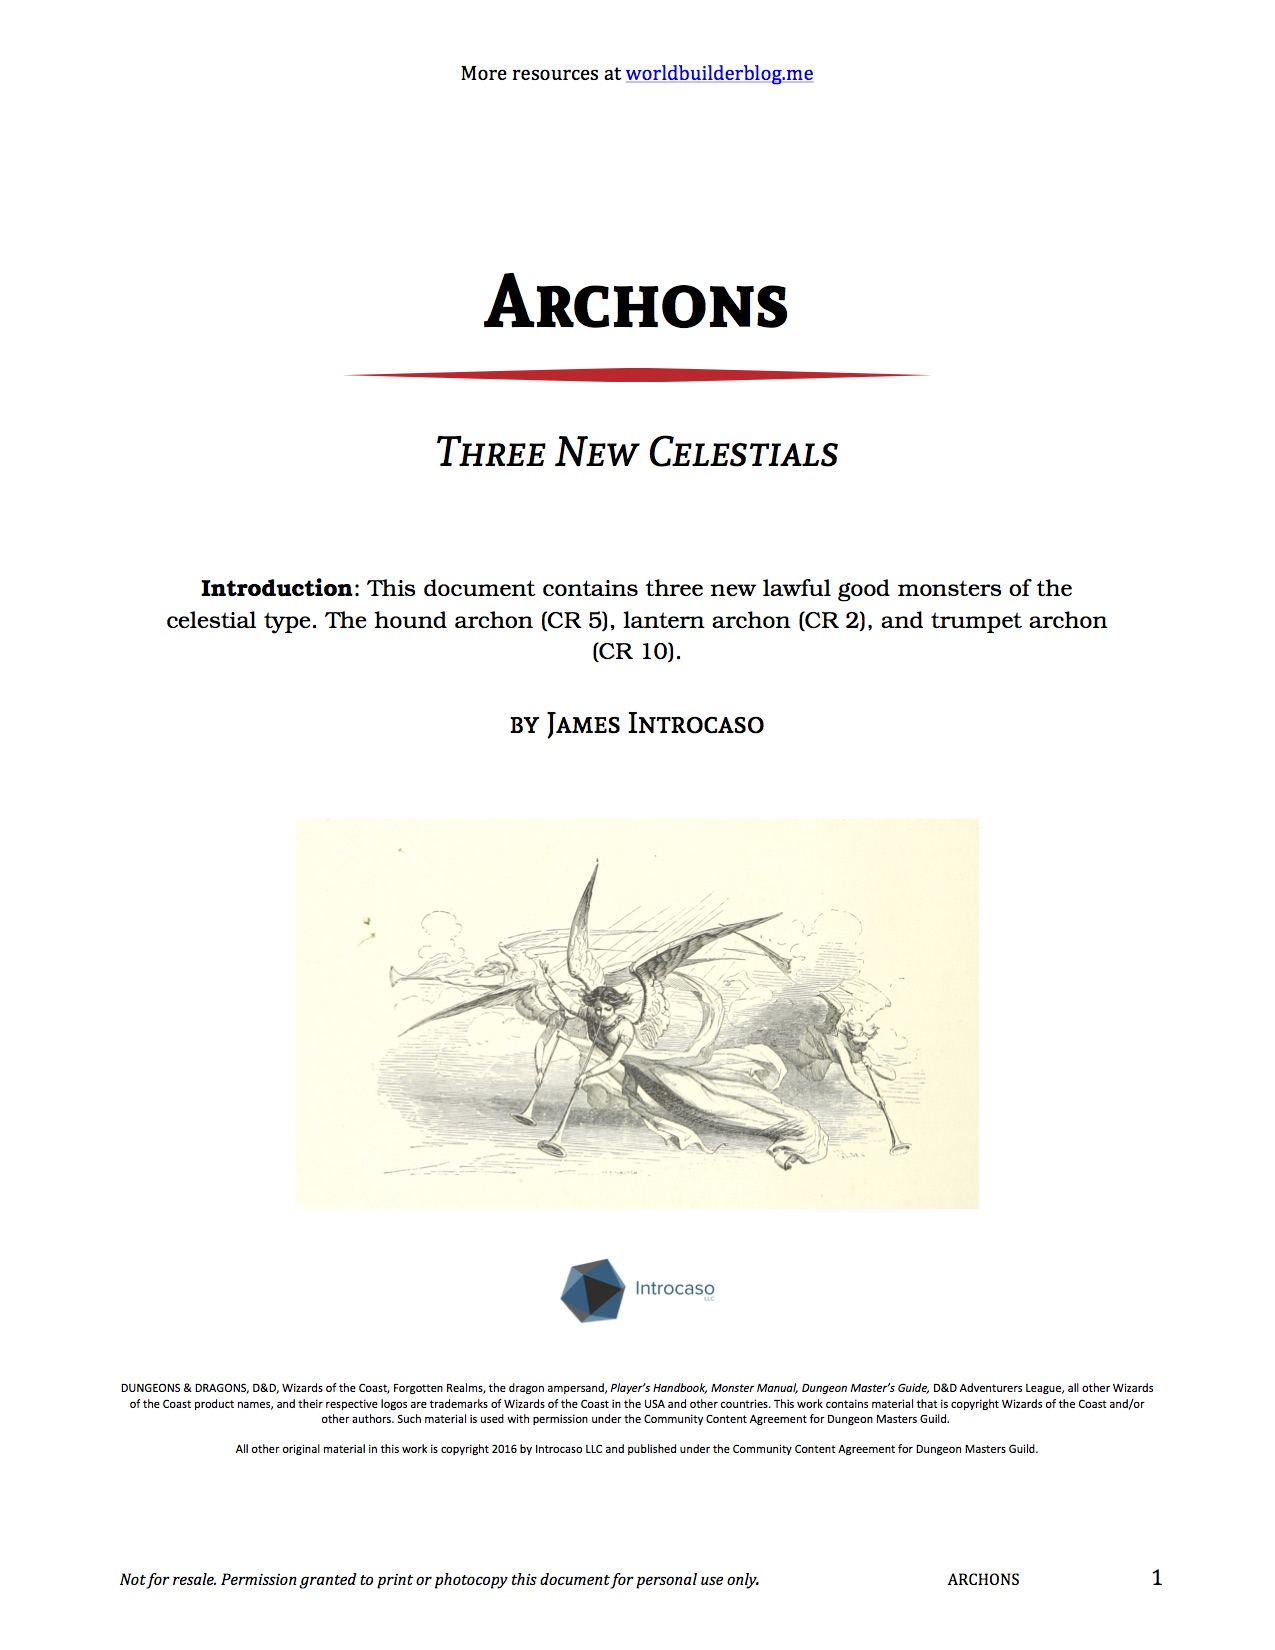 Archons_Introcaso_20160119_Cover